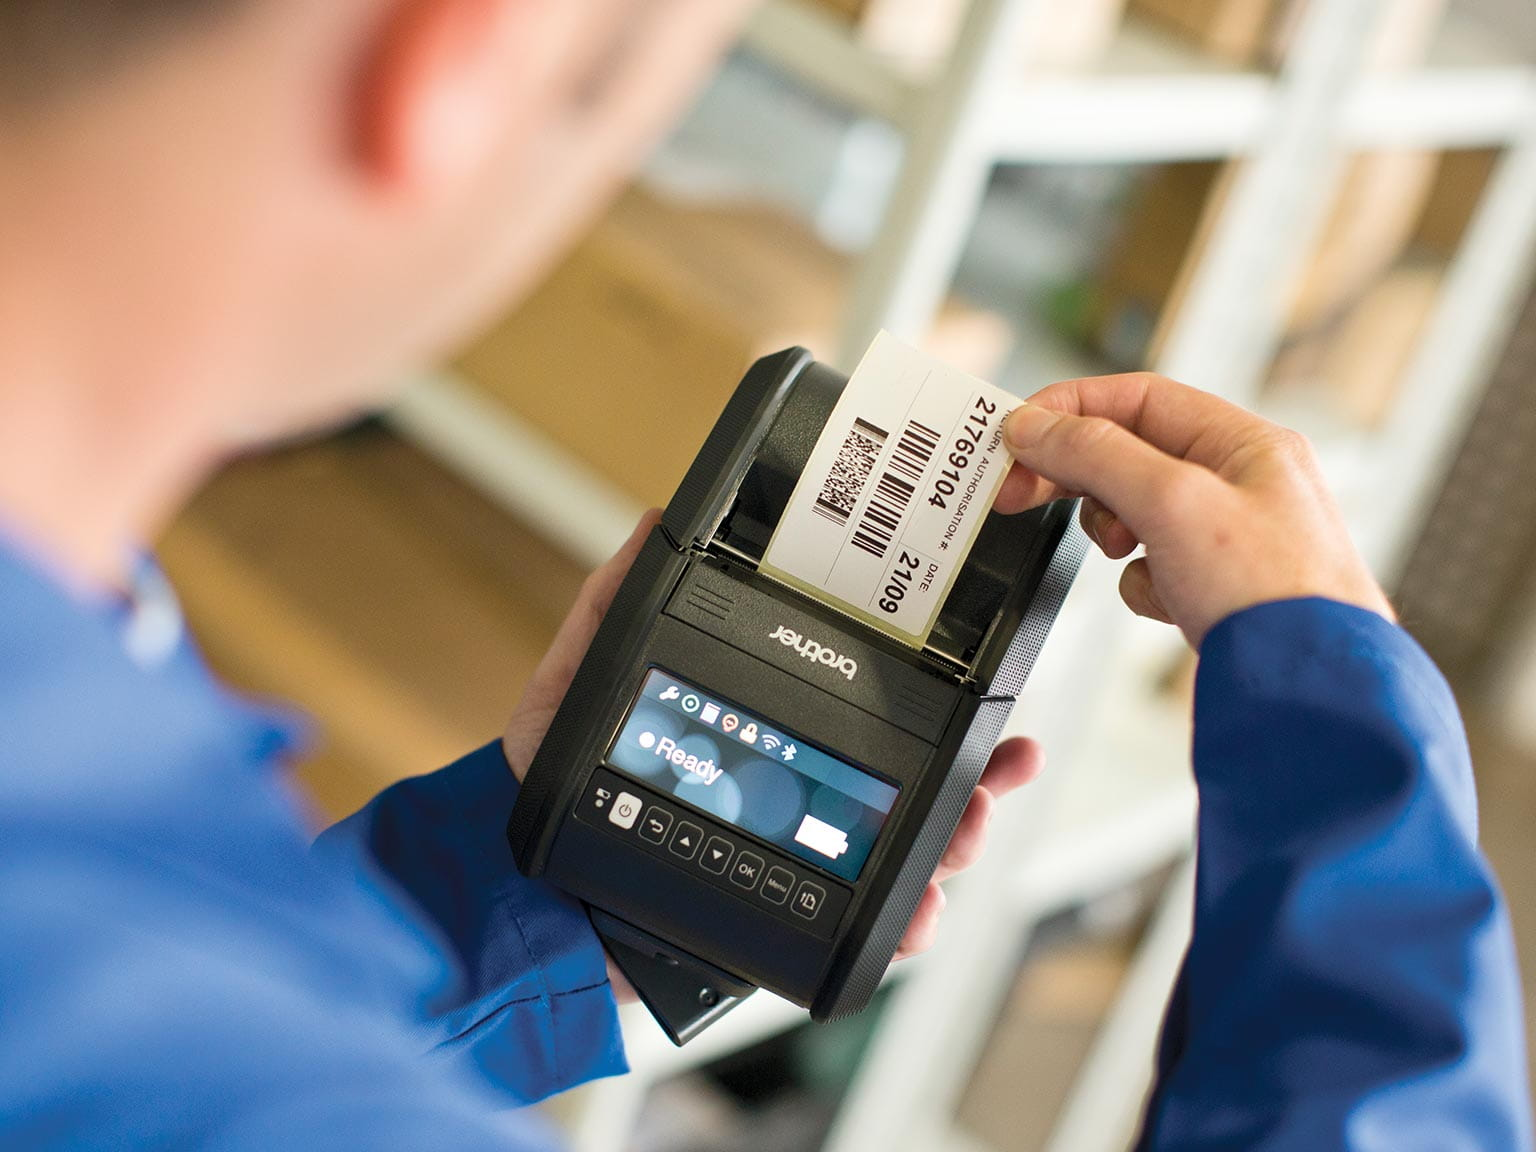 A warehouse worker holds an RJ series label printer in their hand whilst a label is being printed